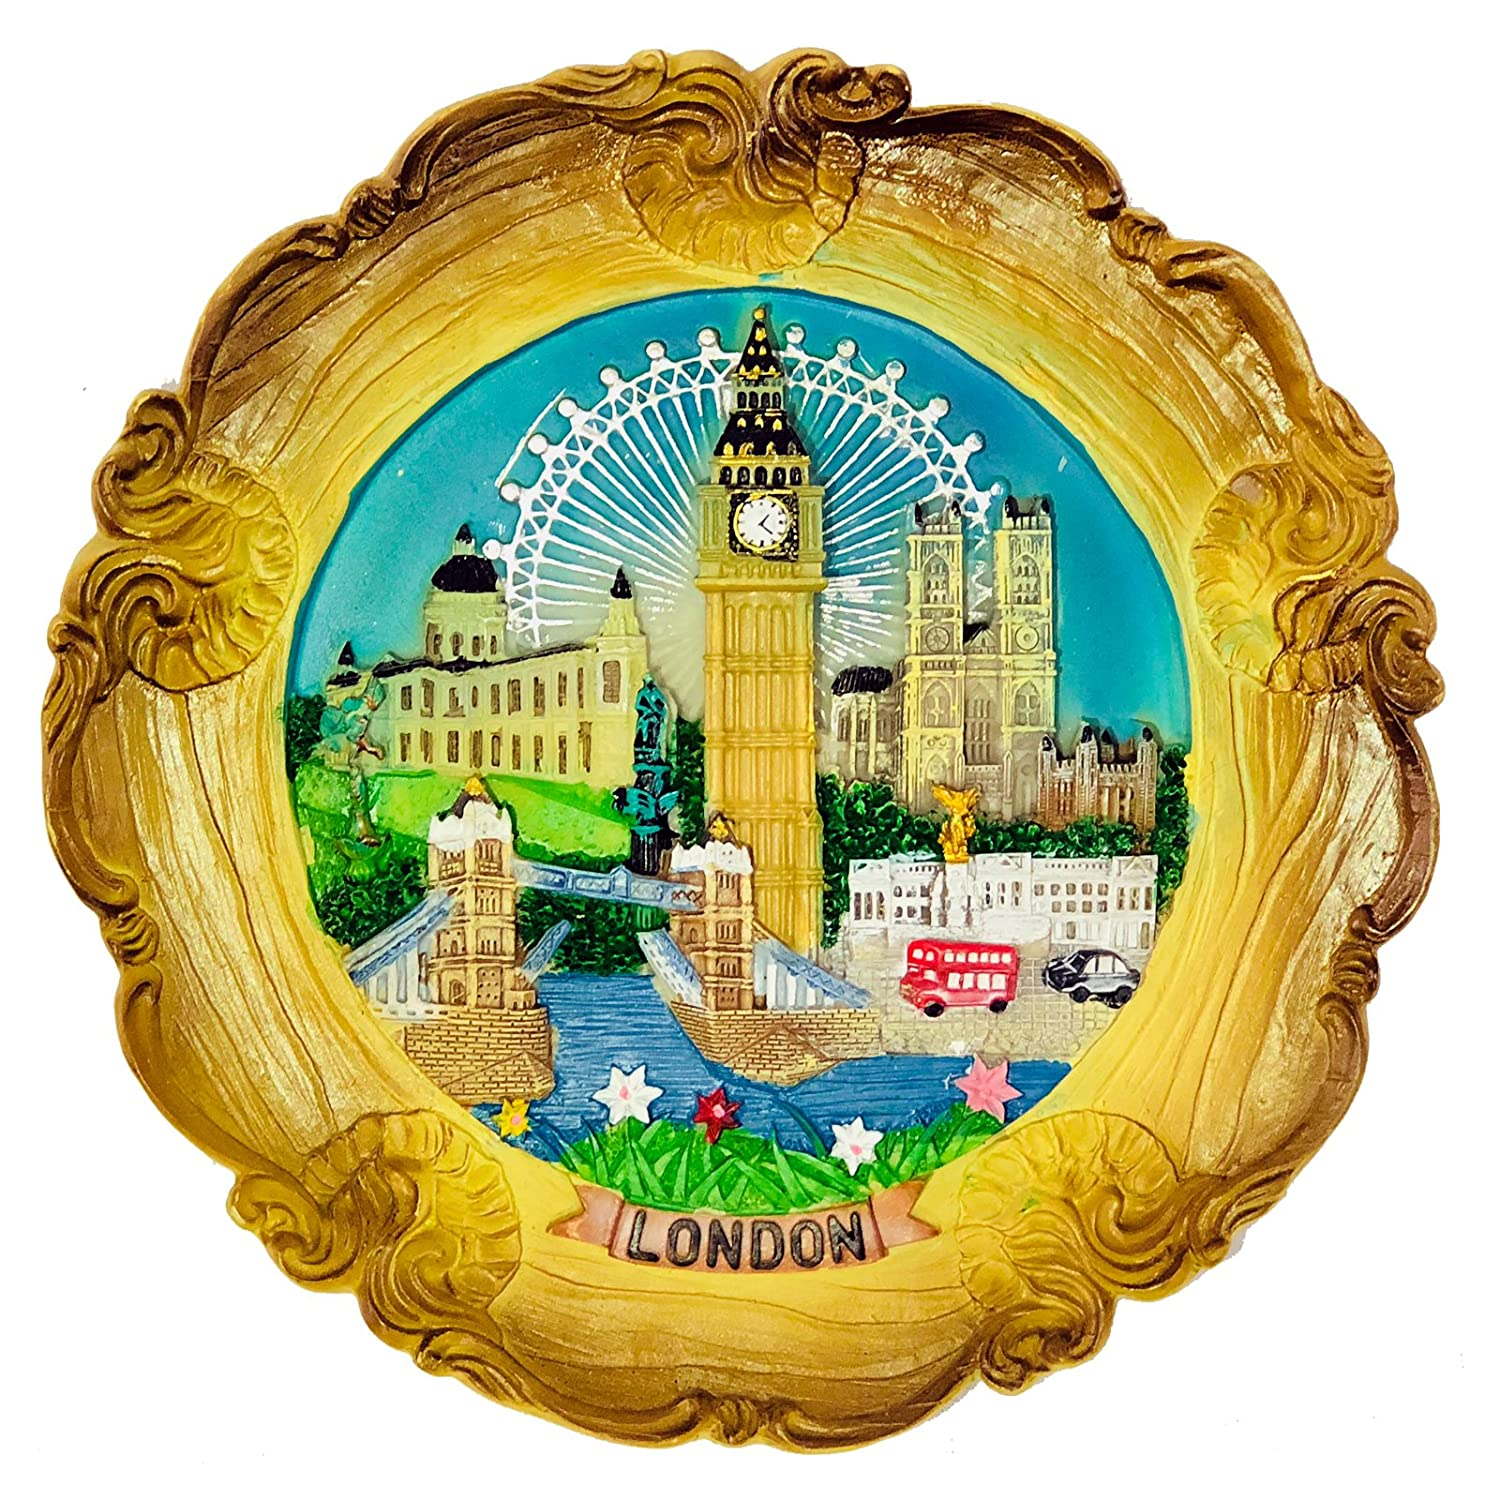 Wood Style Decorative Plate Detailing London Skyline: Big Ben, Tower ...